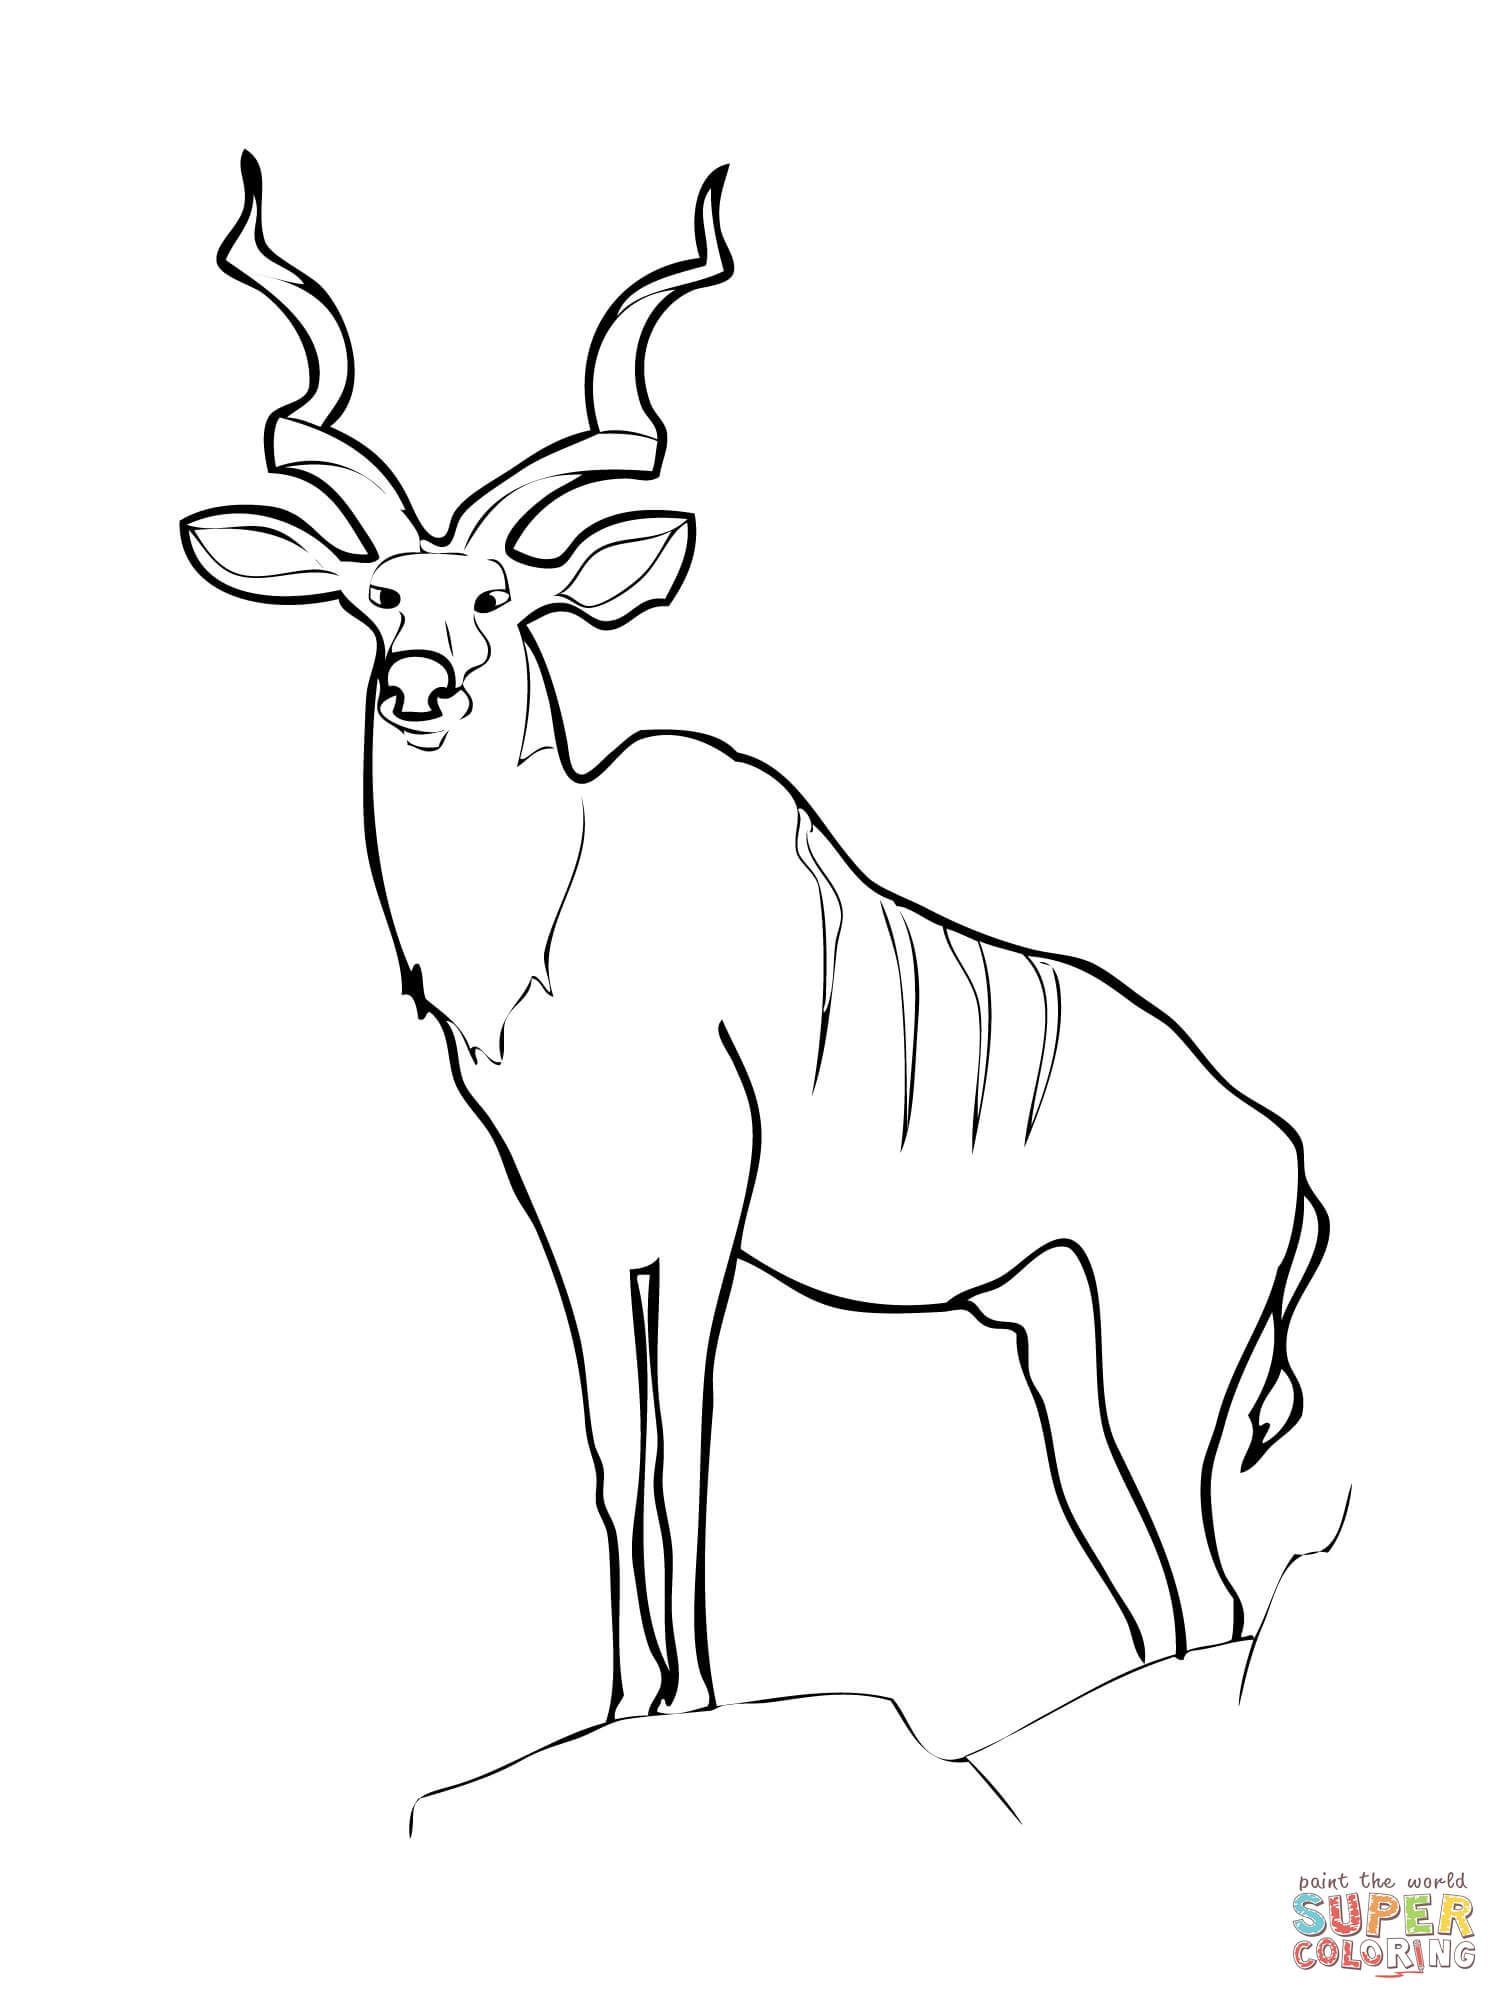 Kudu Antelope Coloring Page Free Printable Coloring Pages Pencil Drawings Of Animals Coloring Pages Animal Templates